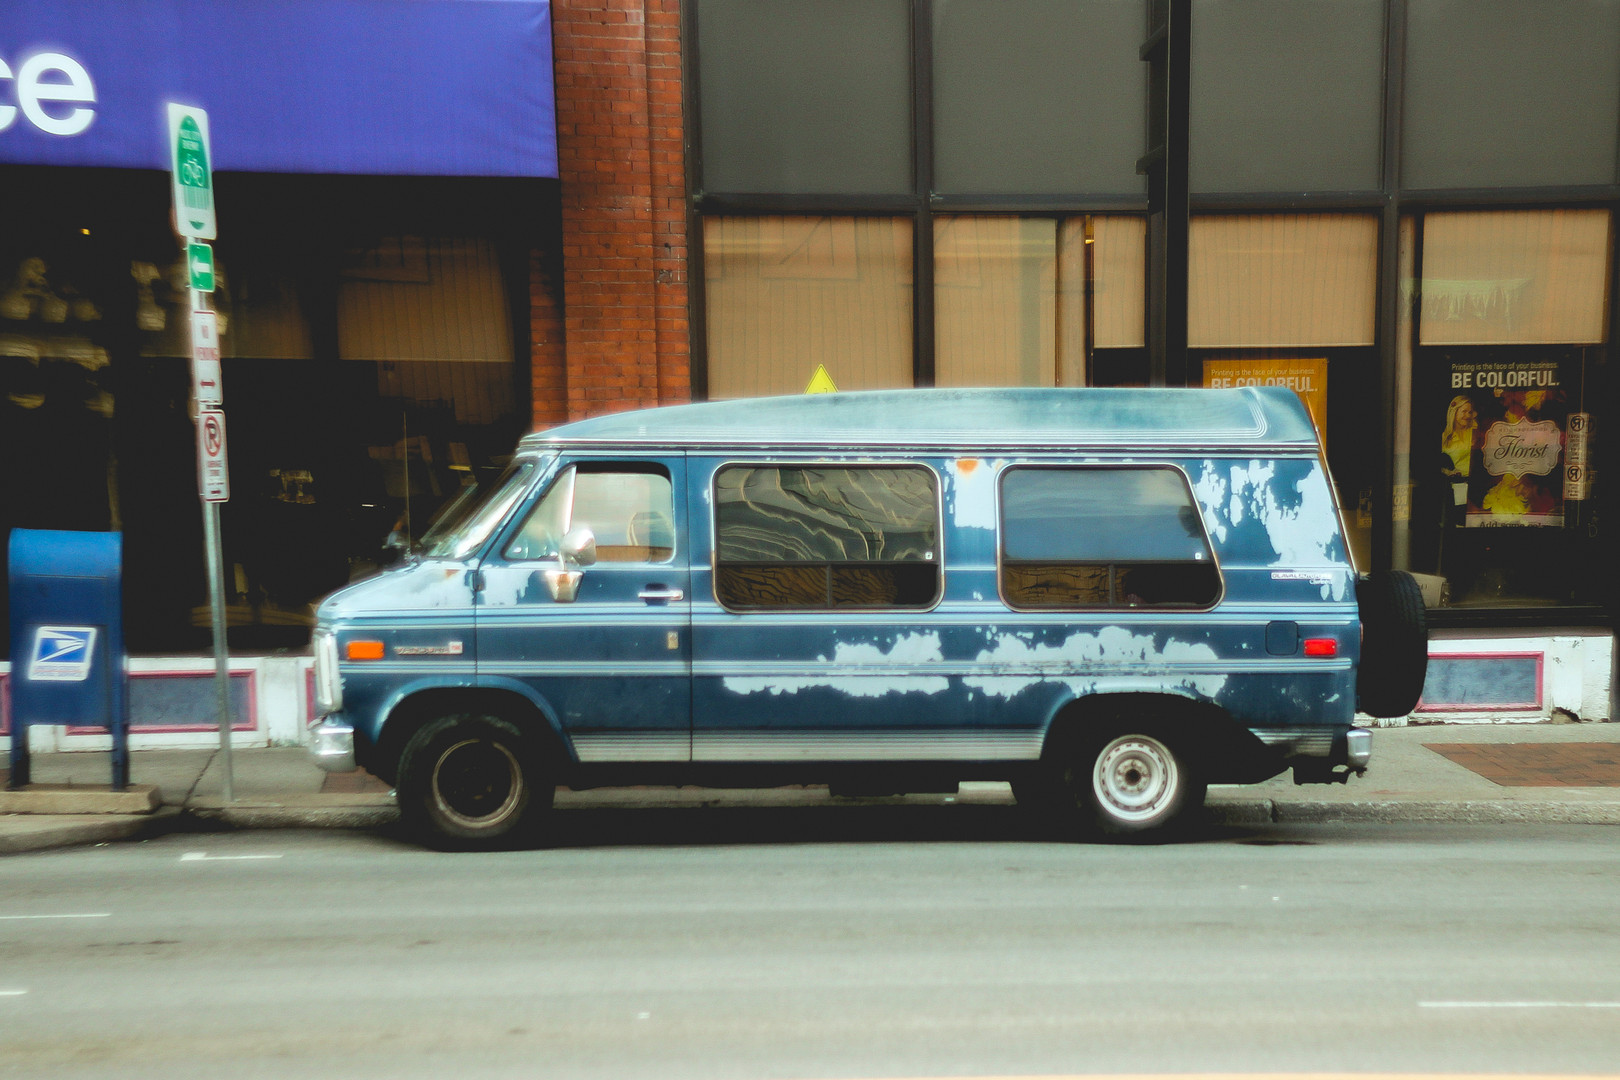 A van is parked in Broadway street, Nashville, Tennessee. August 2013